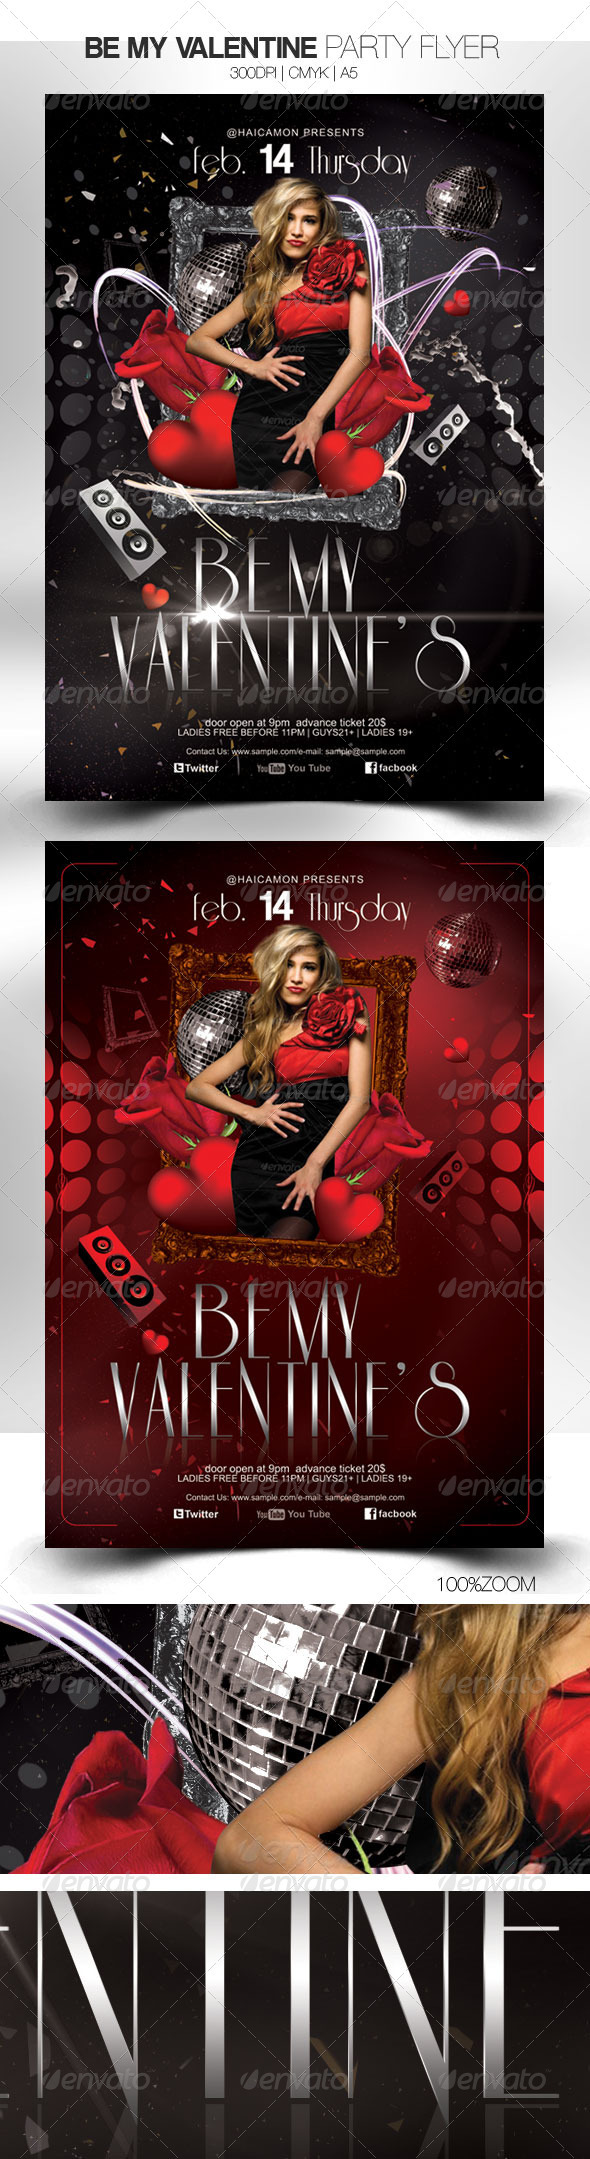 GraphicRiver Be My Valentine Party Flyer 3914049